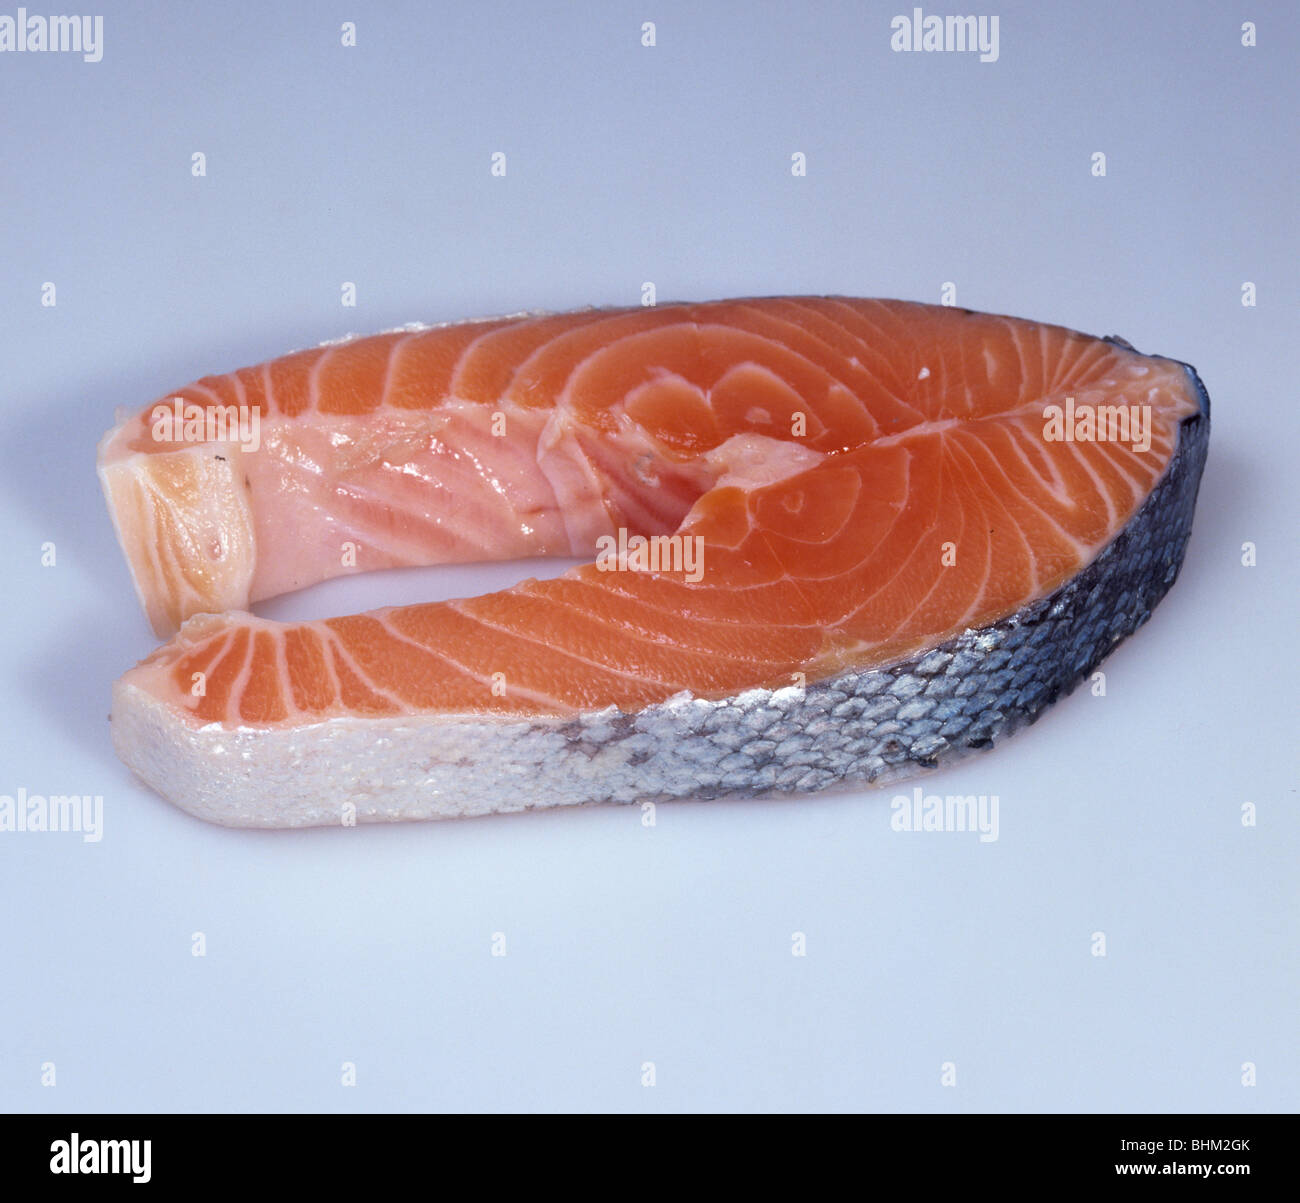 A smoked salmon steak, oily fish and a source of vitamin D and sodium - Stock Image